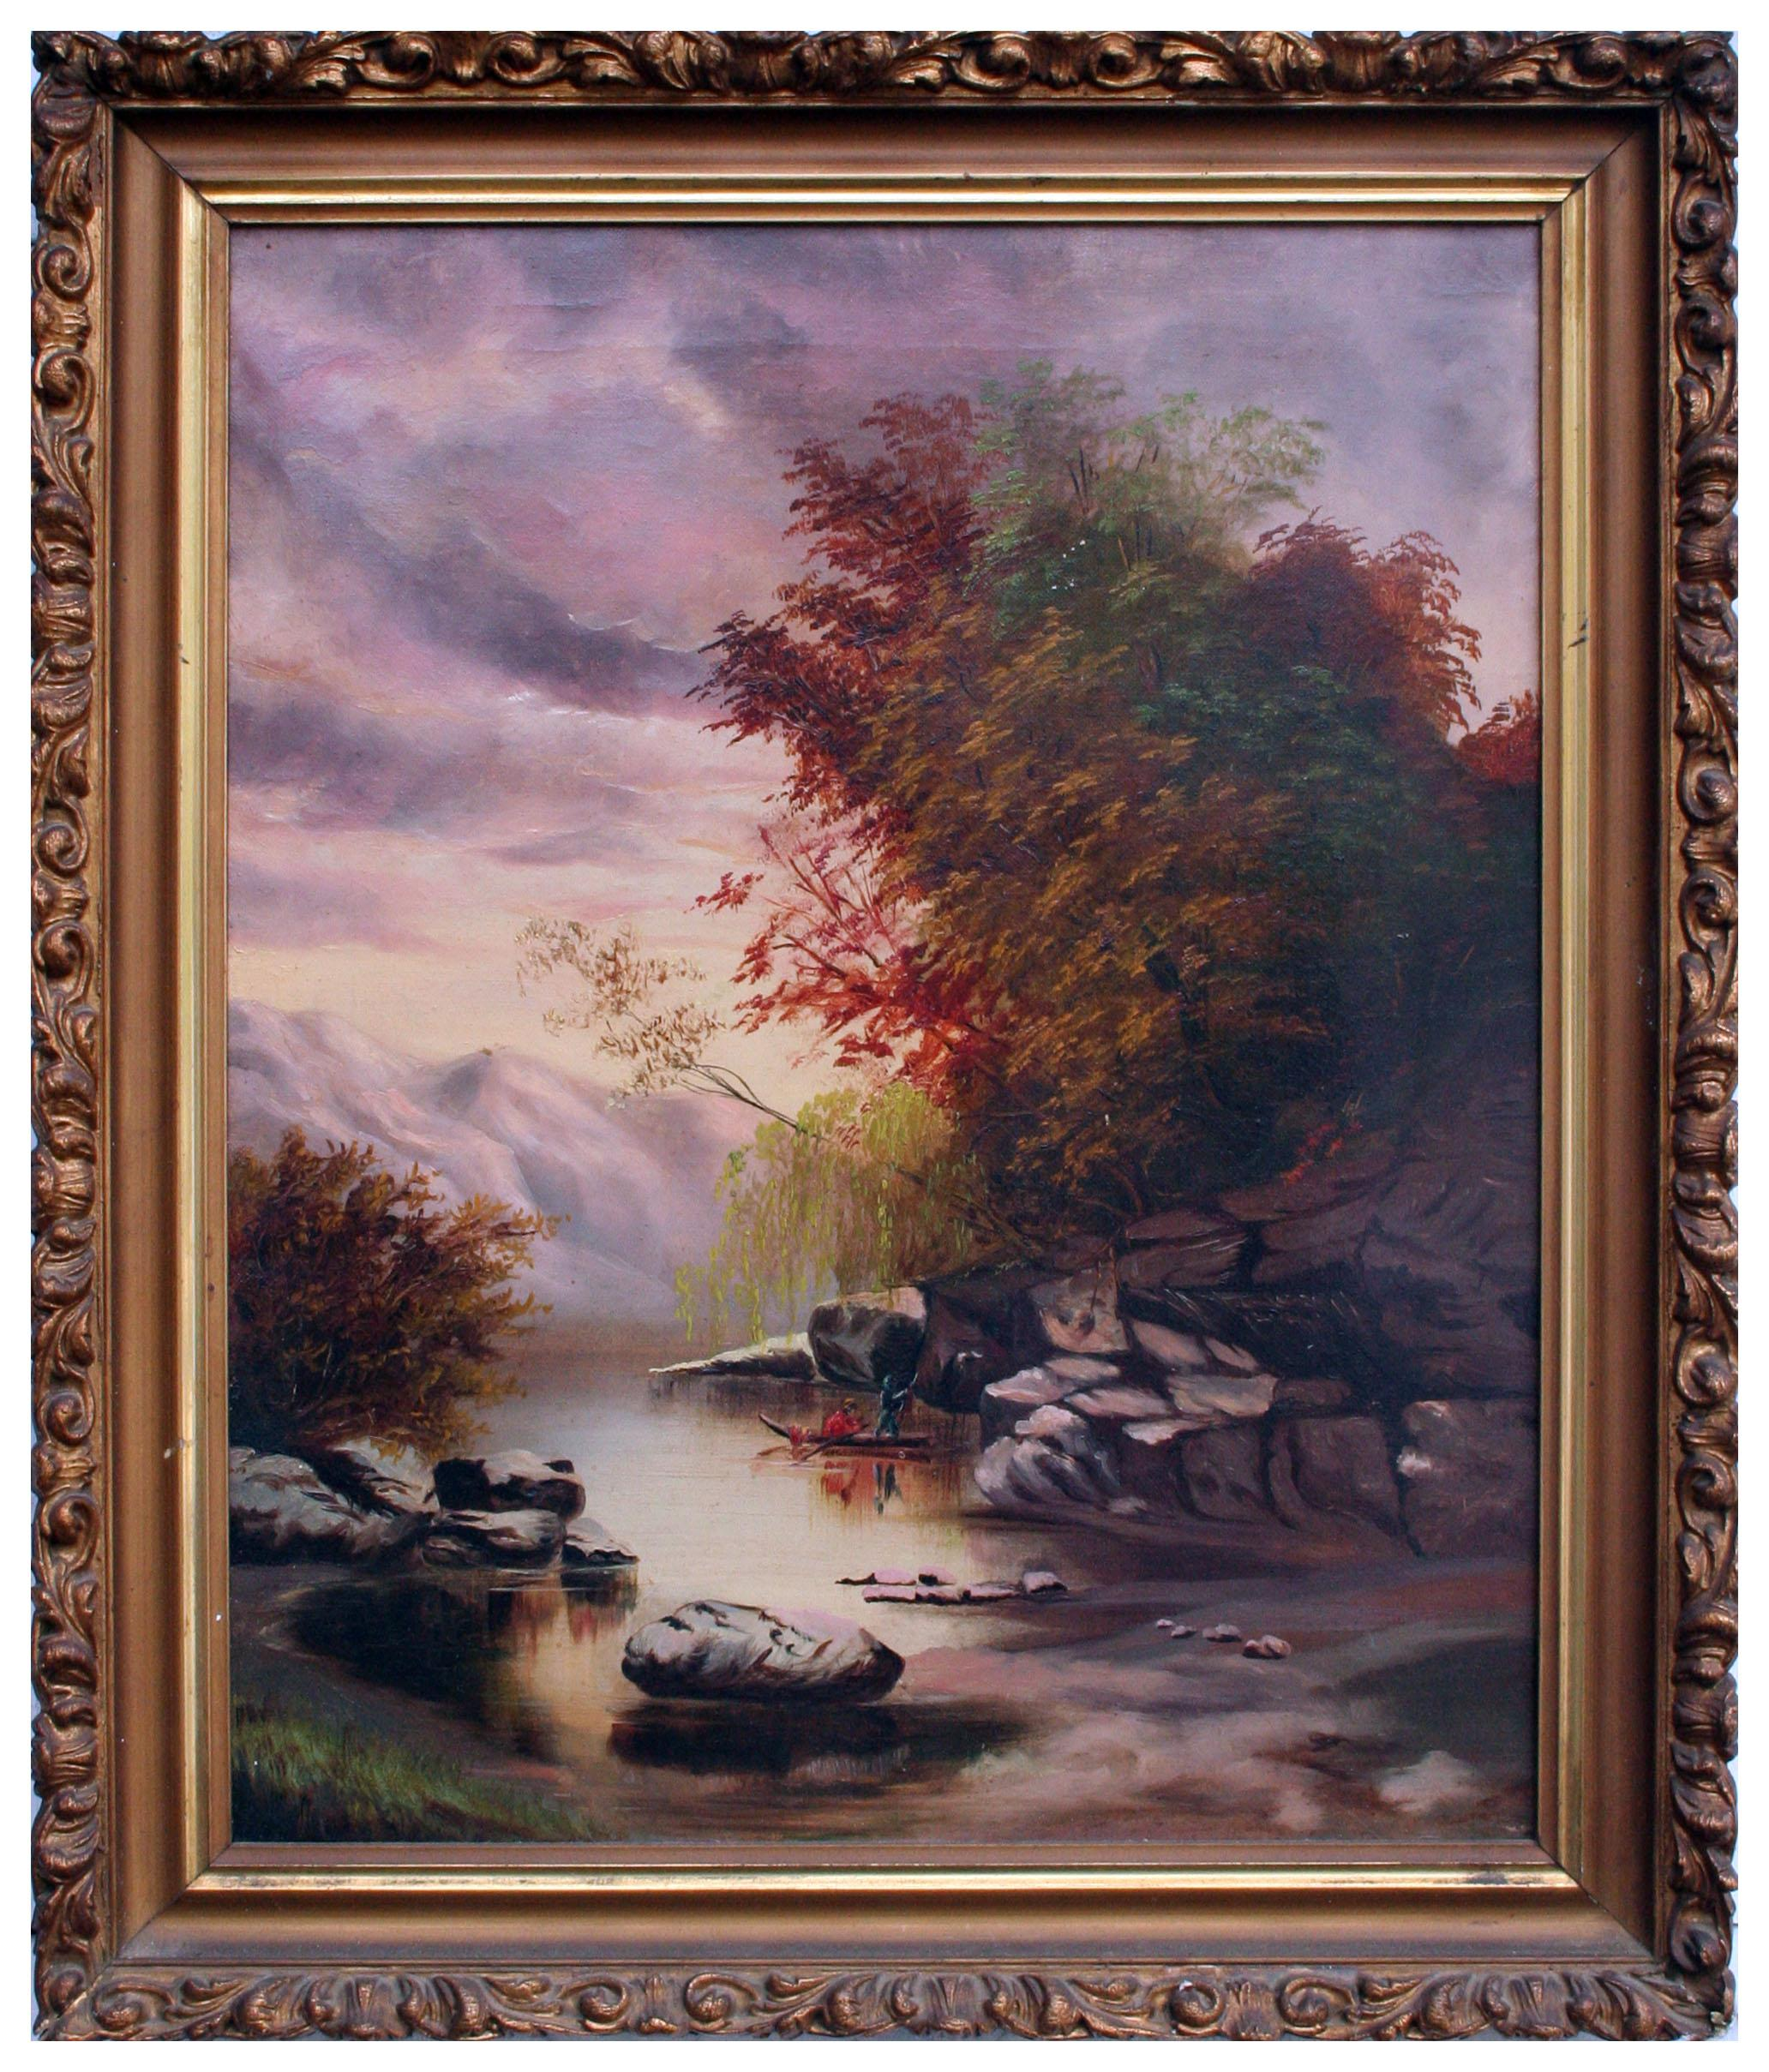 Canoeing on the River Autumnal Landscape